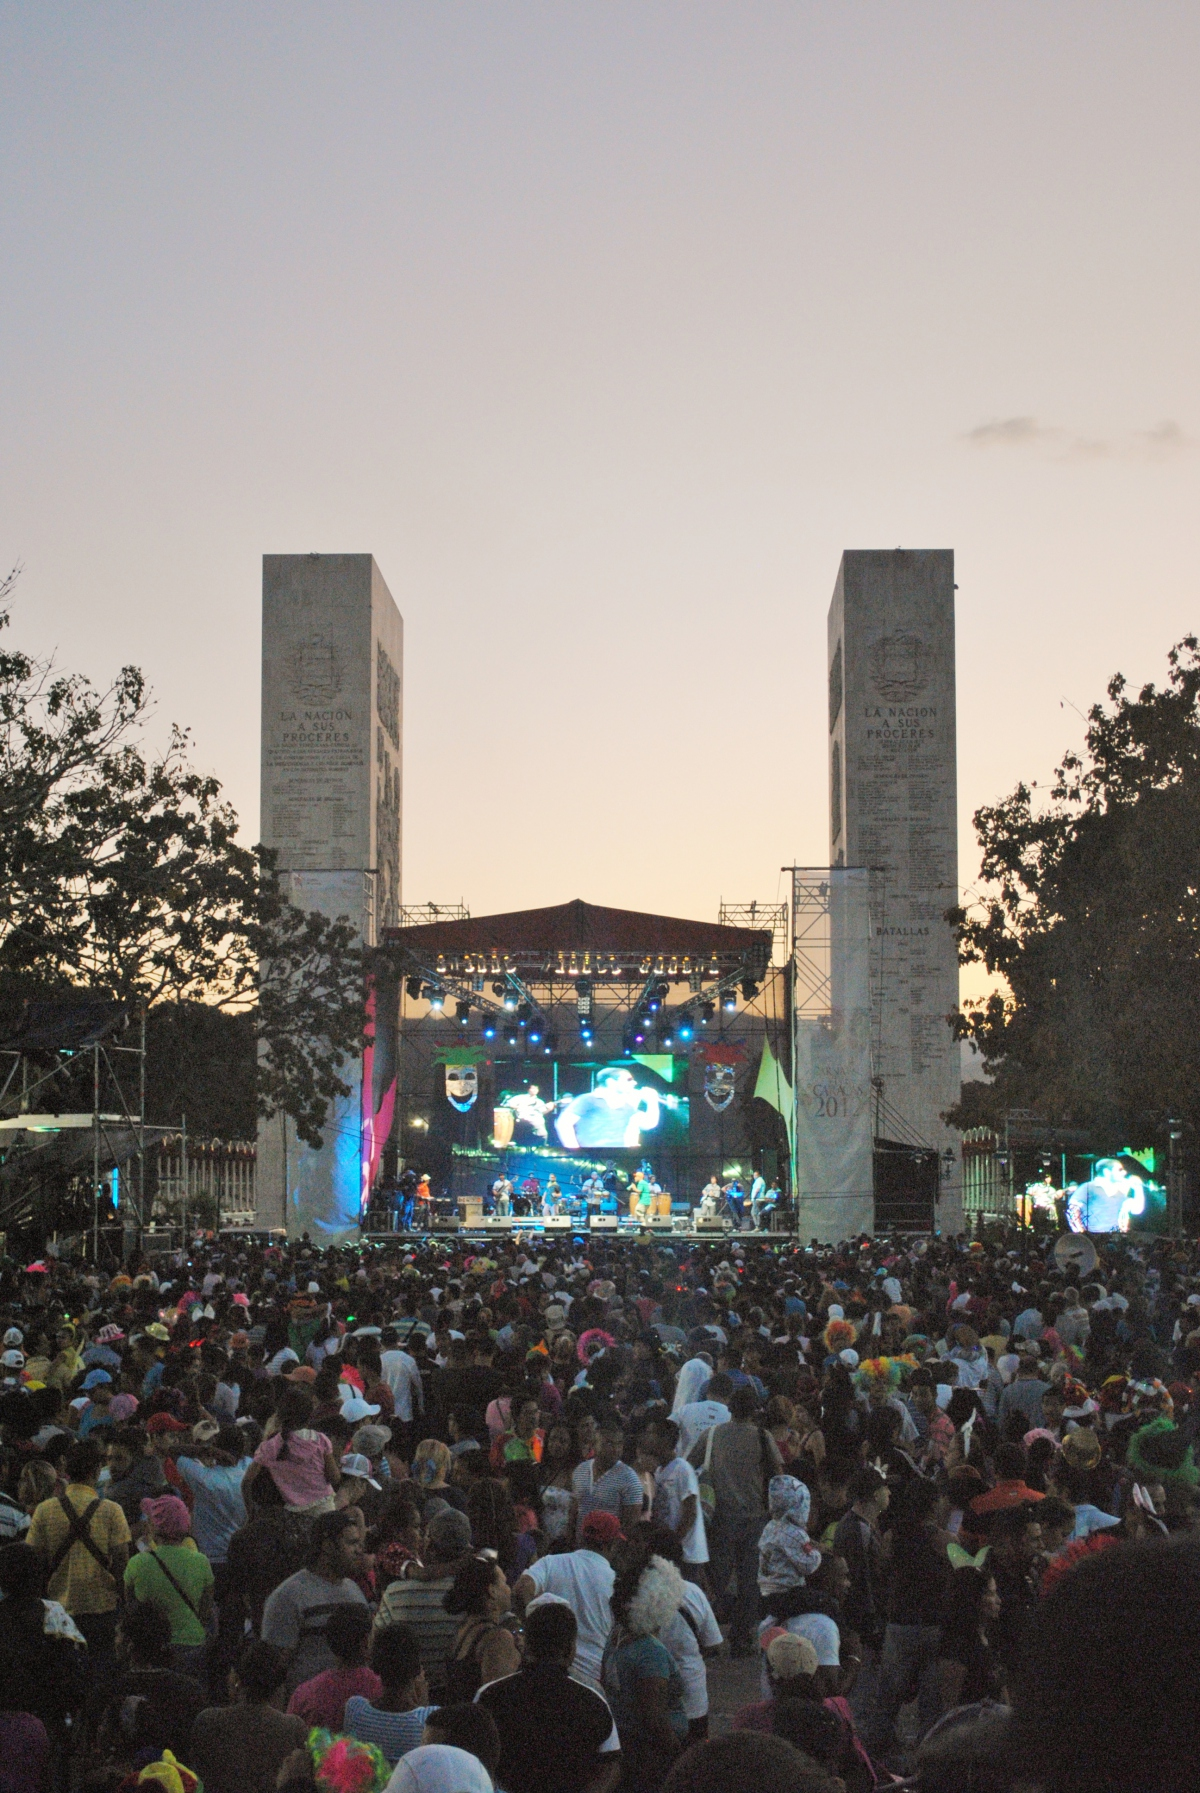 The government put on a free concert for people in the evening (Rachael Boothroyd - Venezuelanalysis)